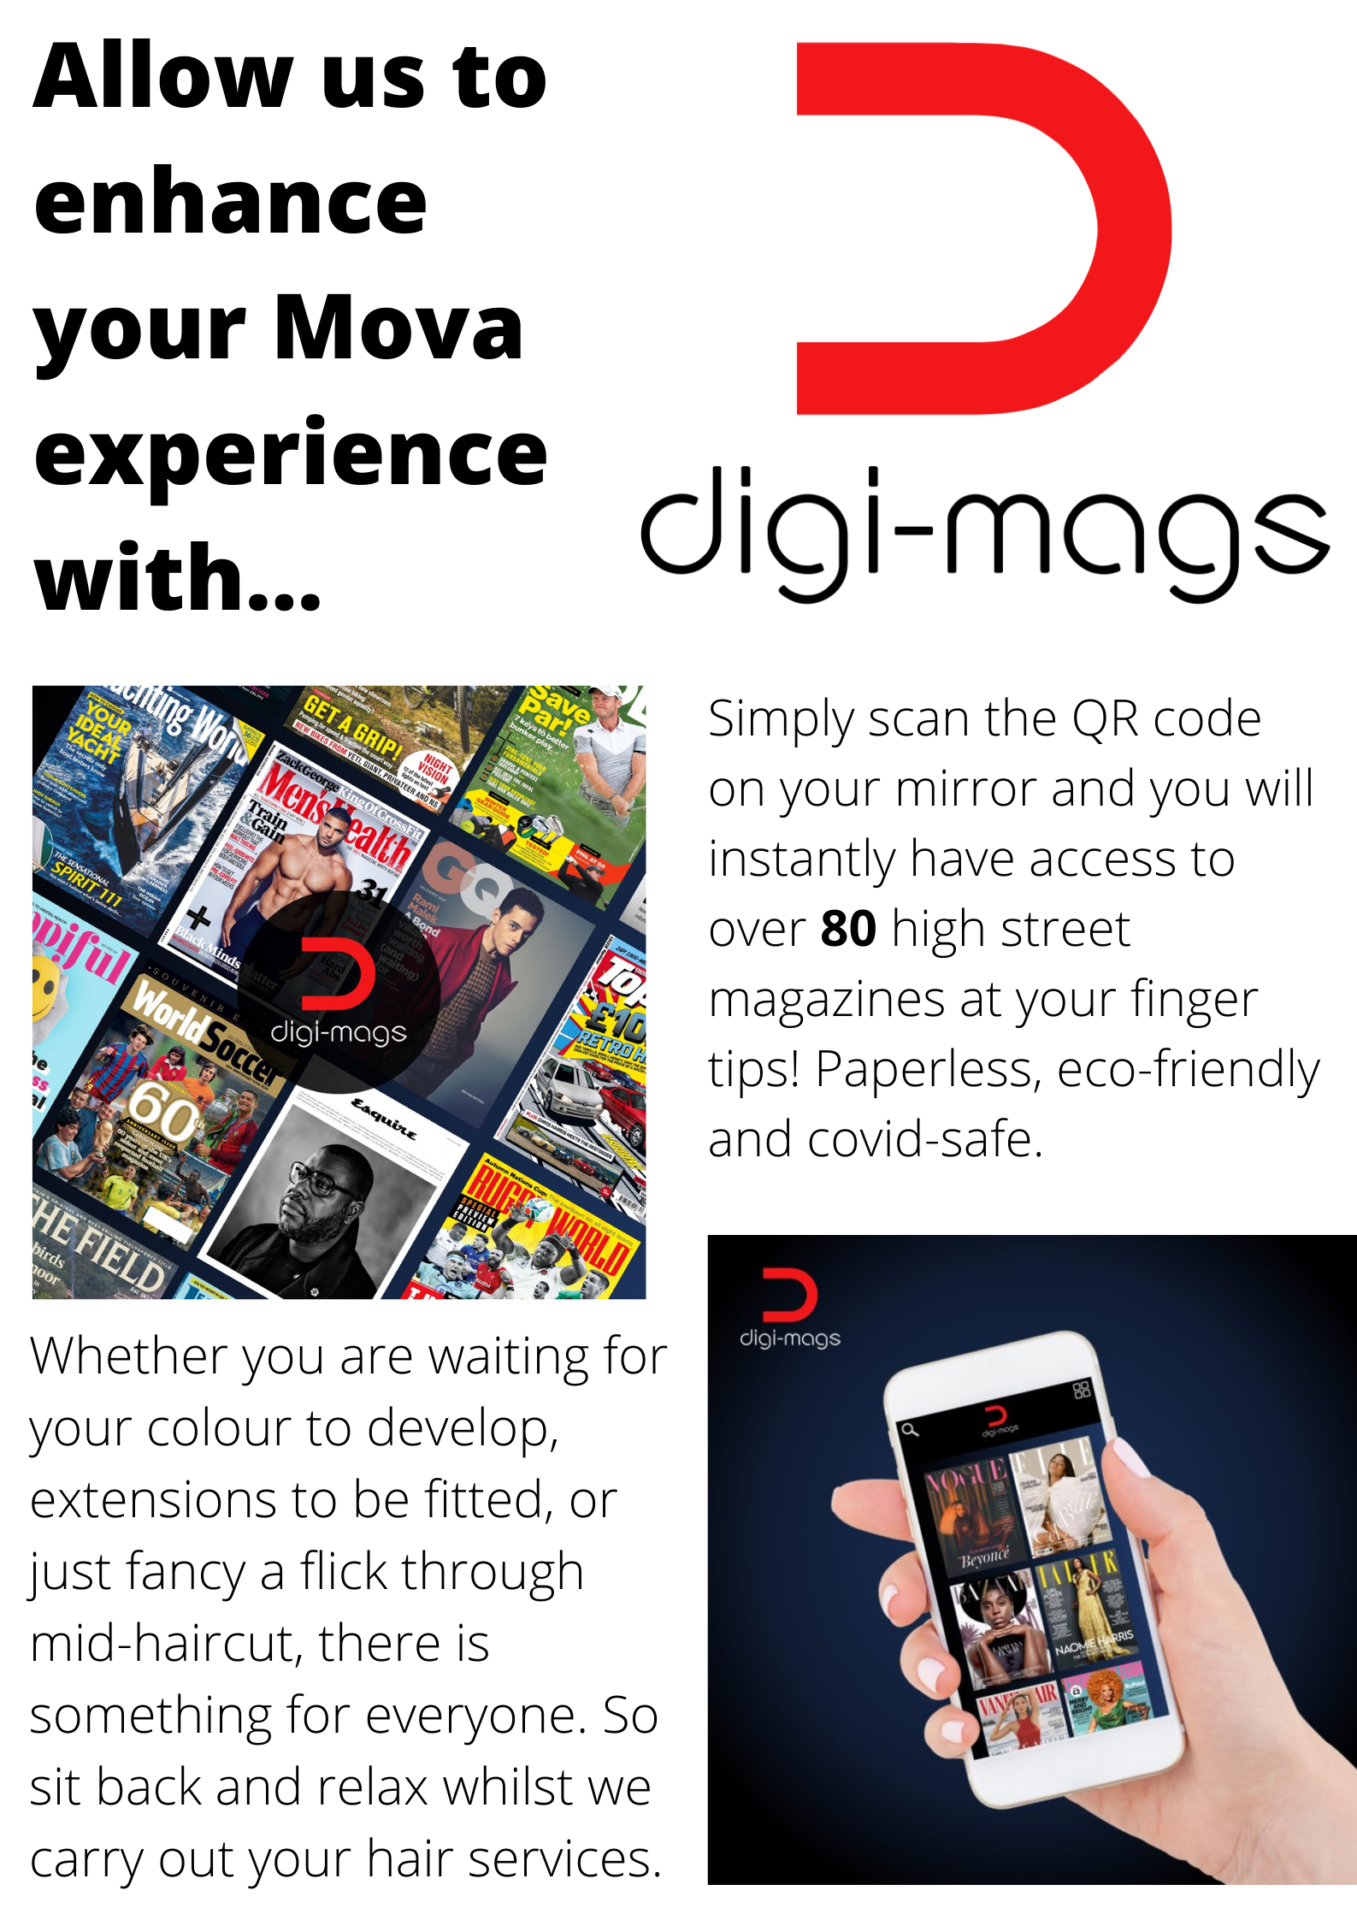 Allow us to enhance your Mova experience with DIGI MAGS